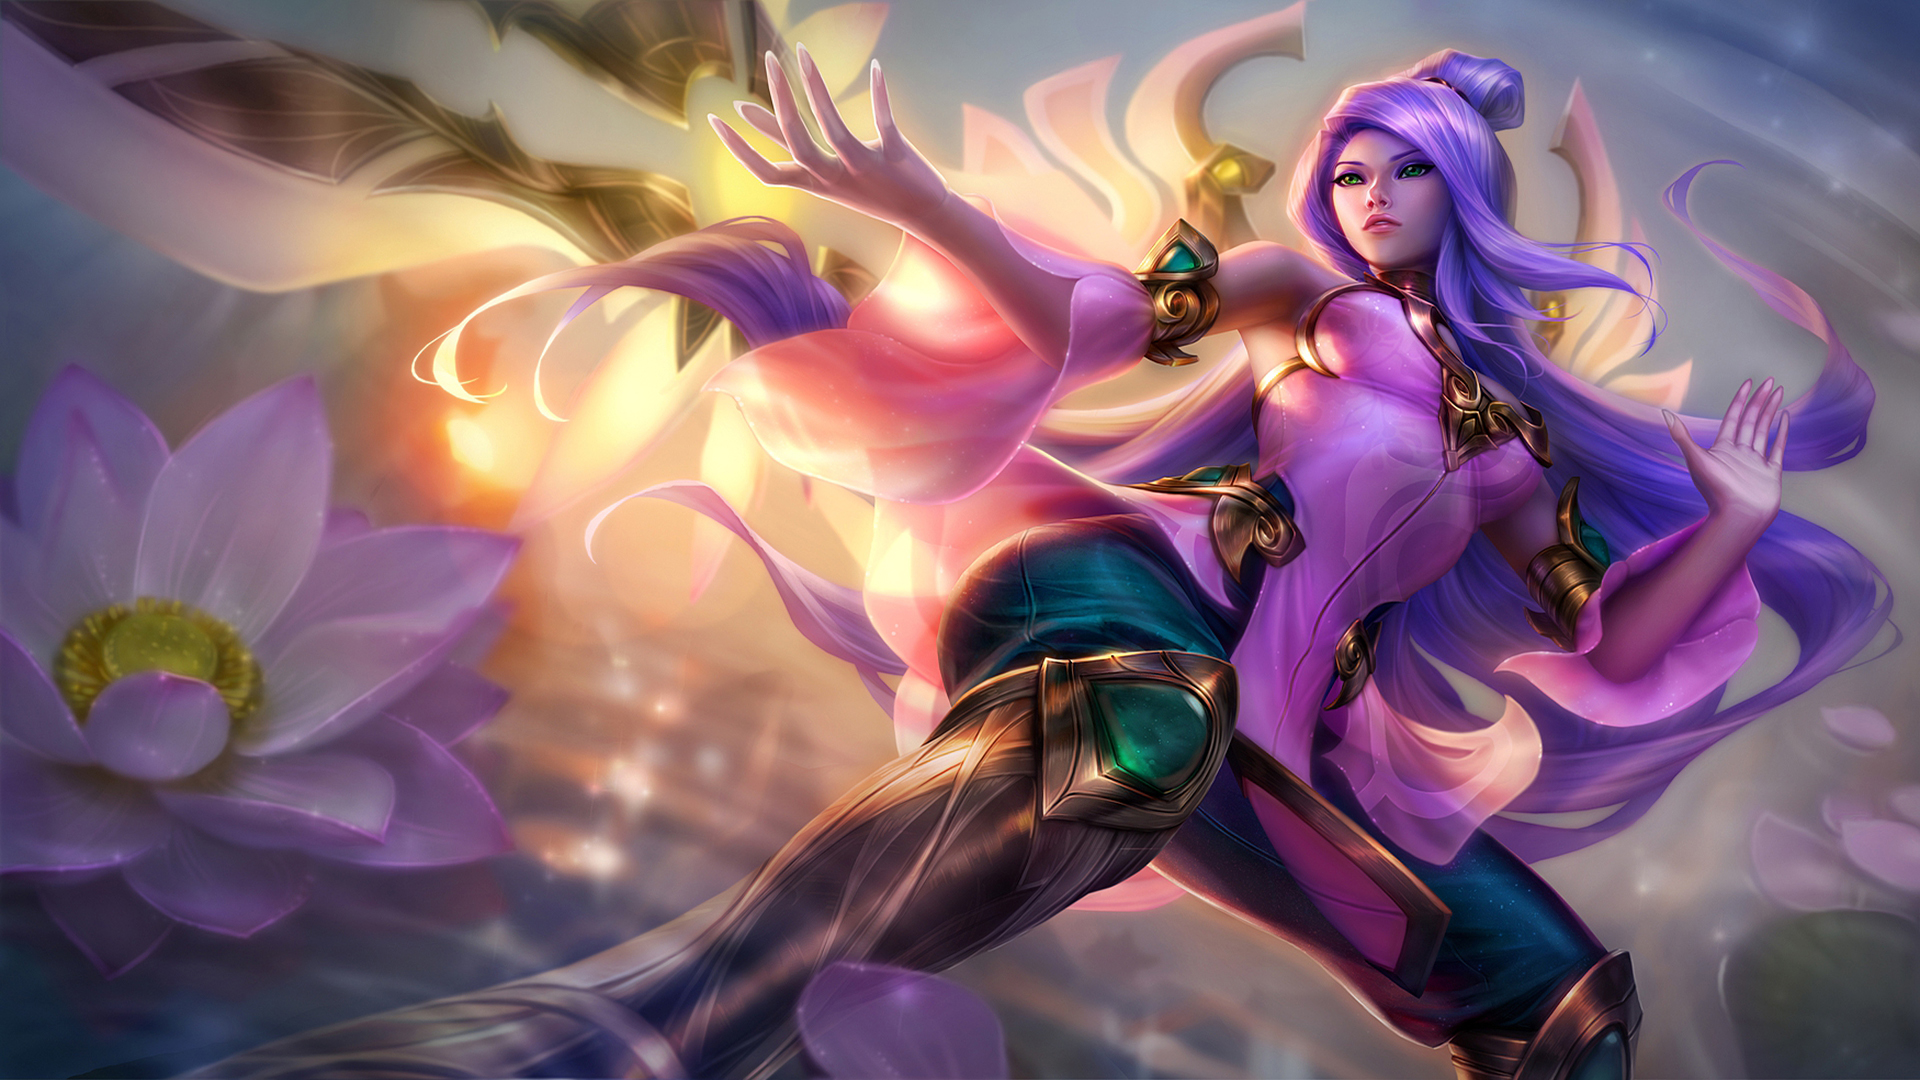 Order of the Lotus Irelia League Of Legends Wallpapers HD 1920x1080